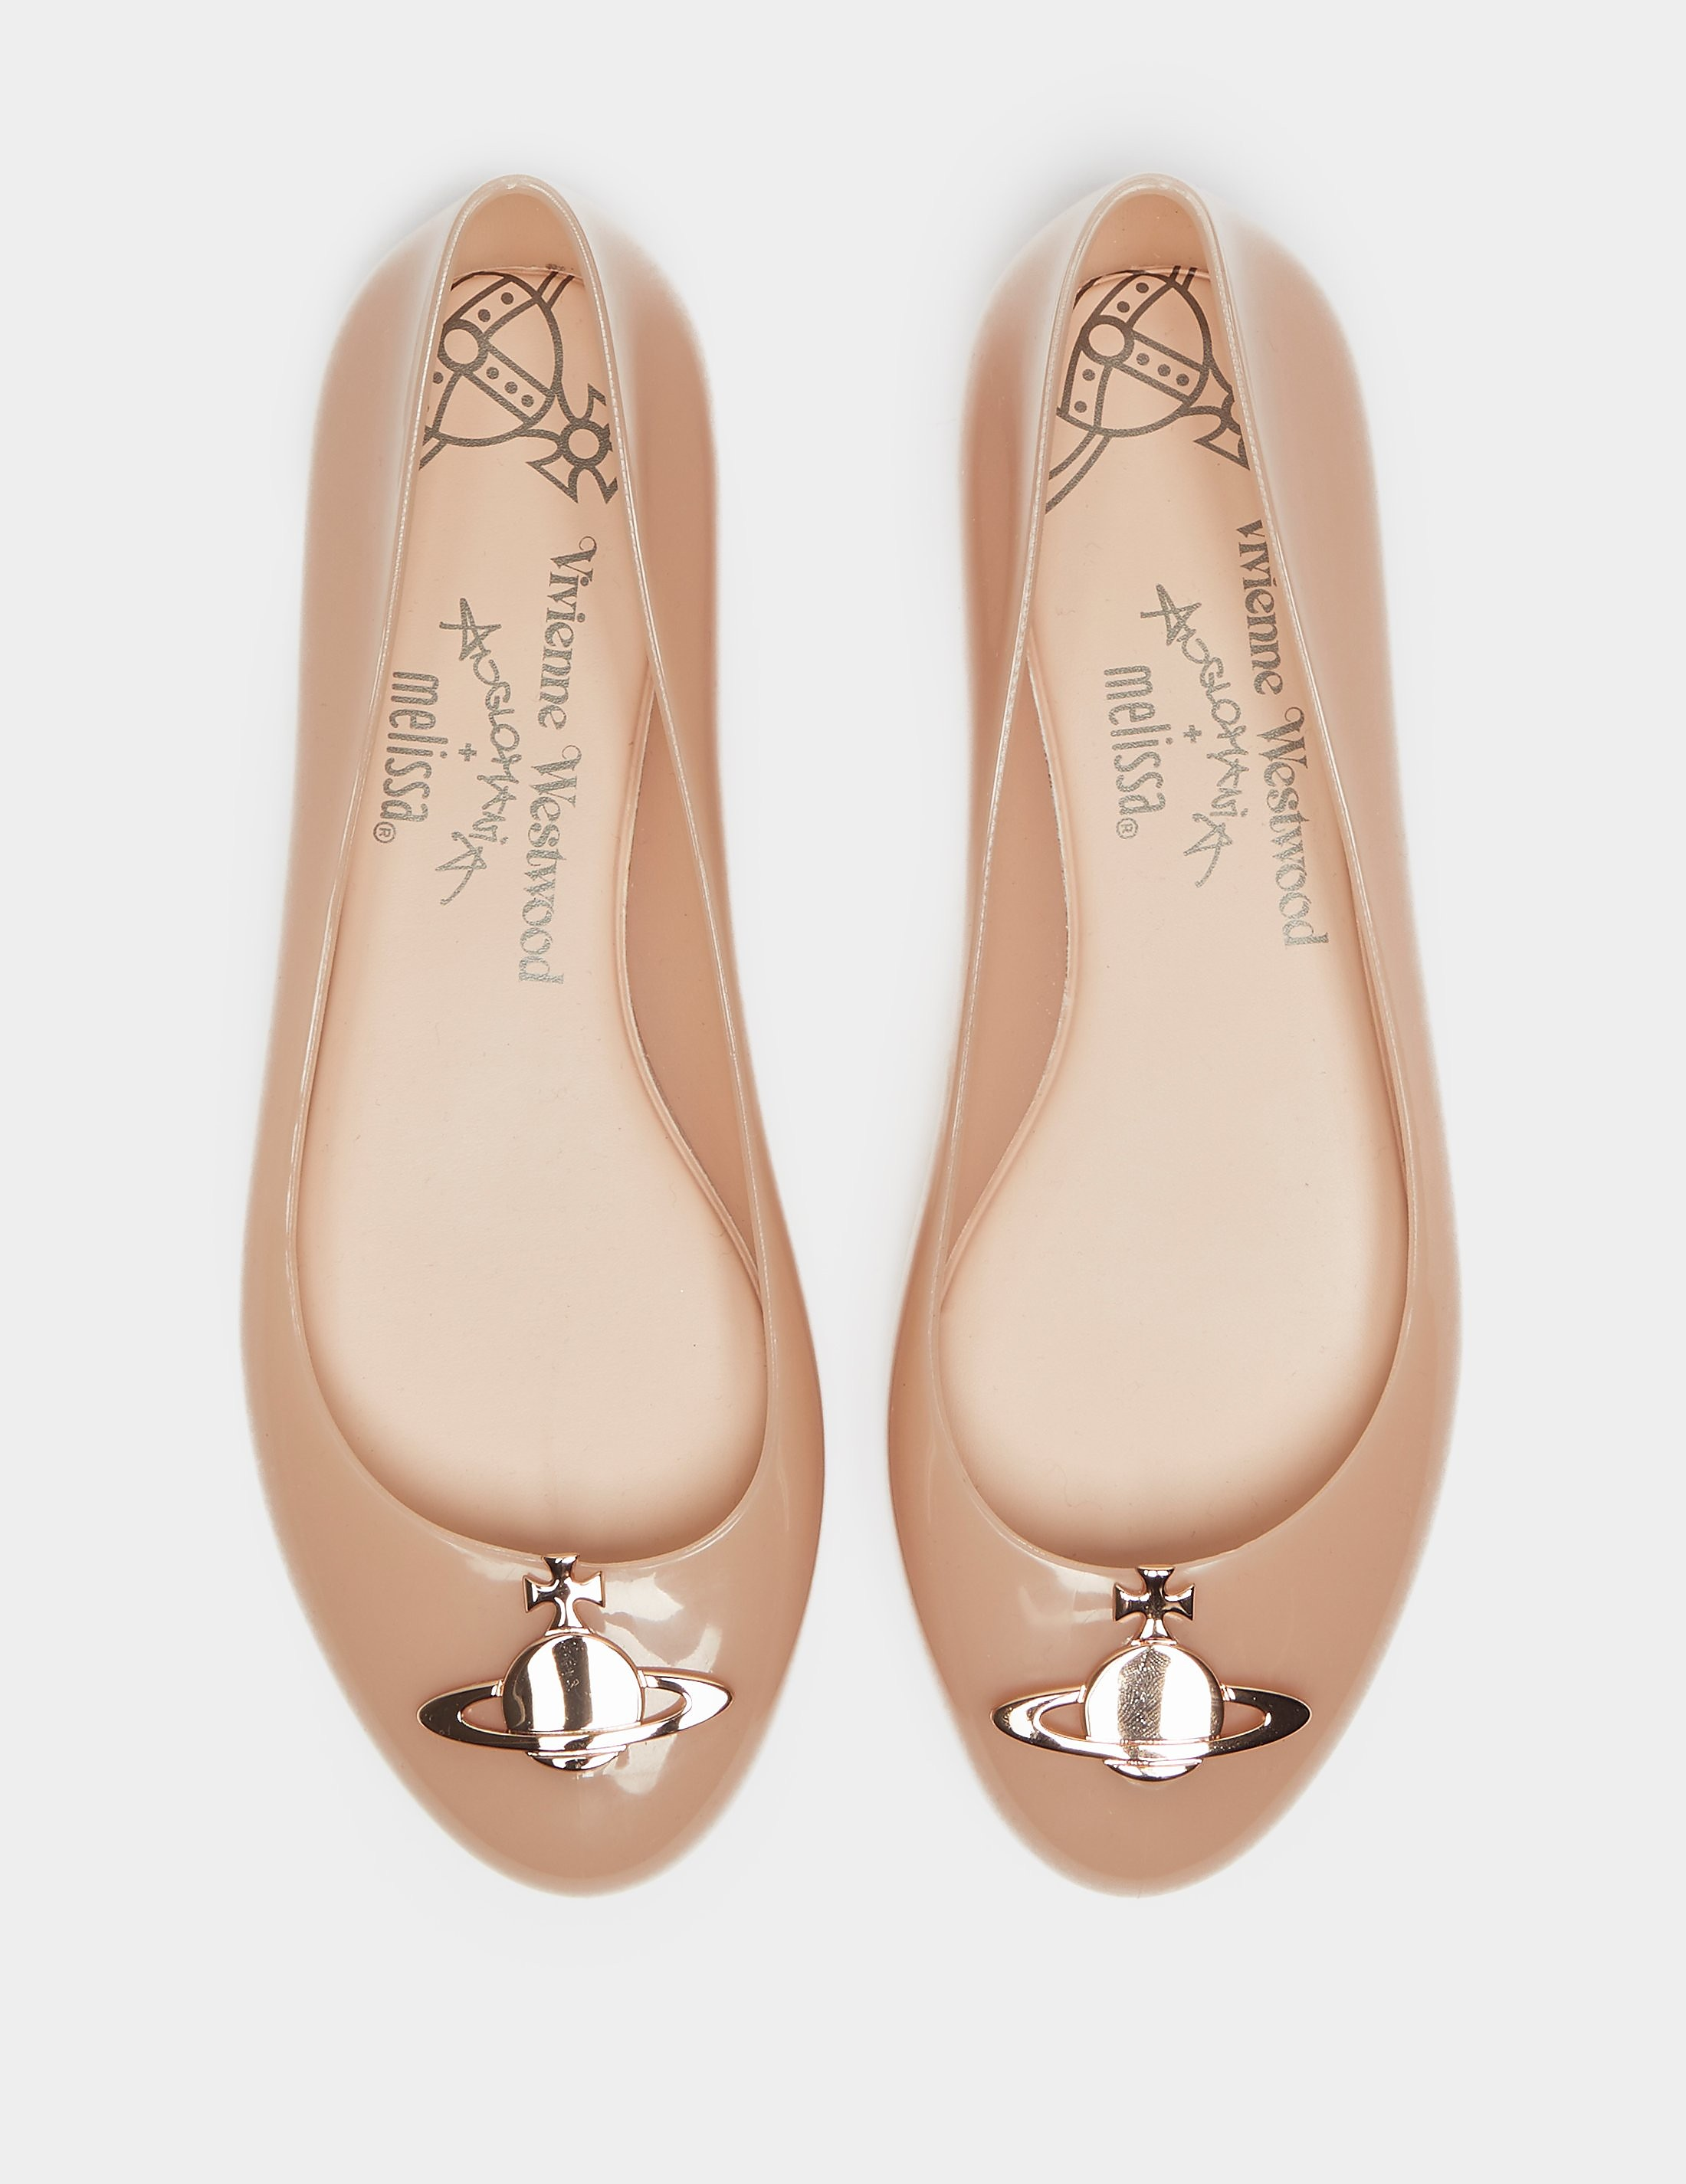 Melissa x Vivienne Westwood Anglomania Space Love